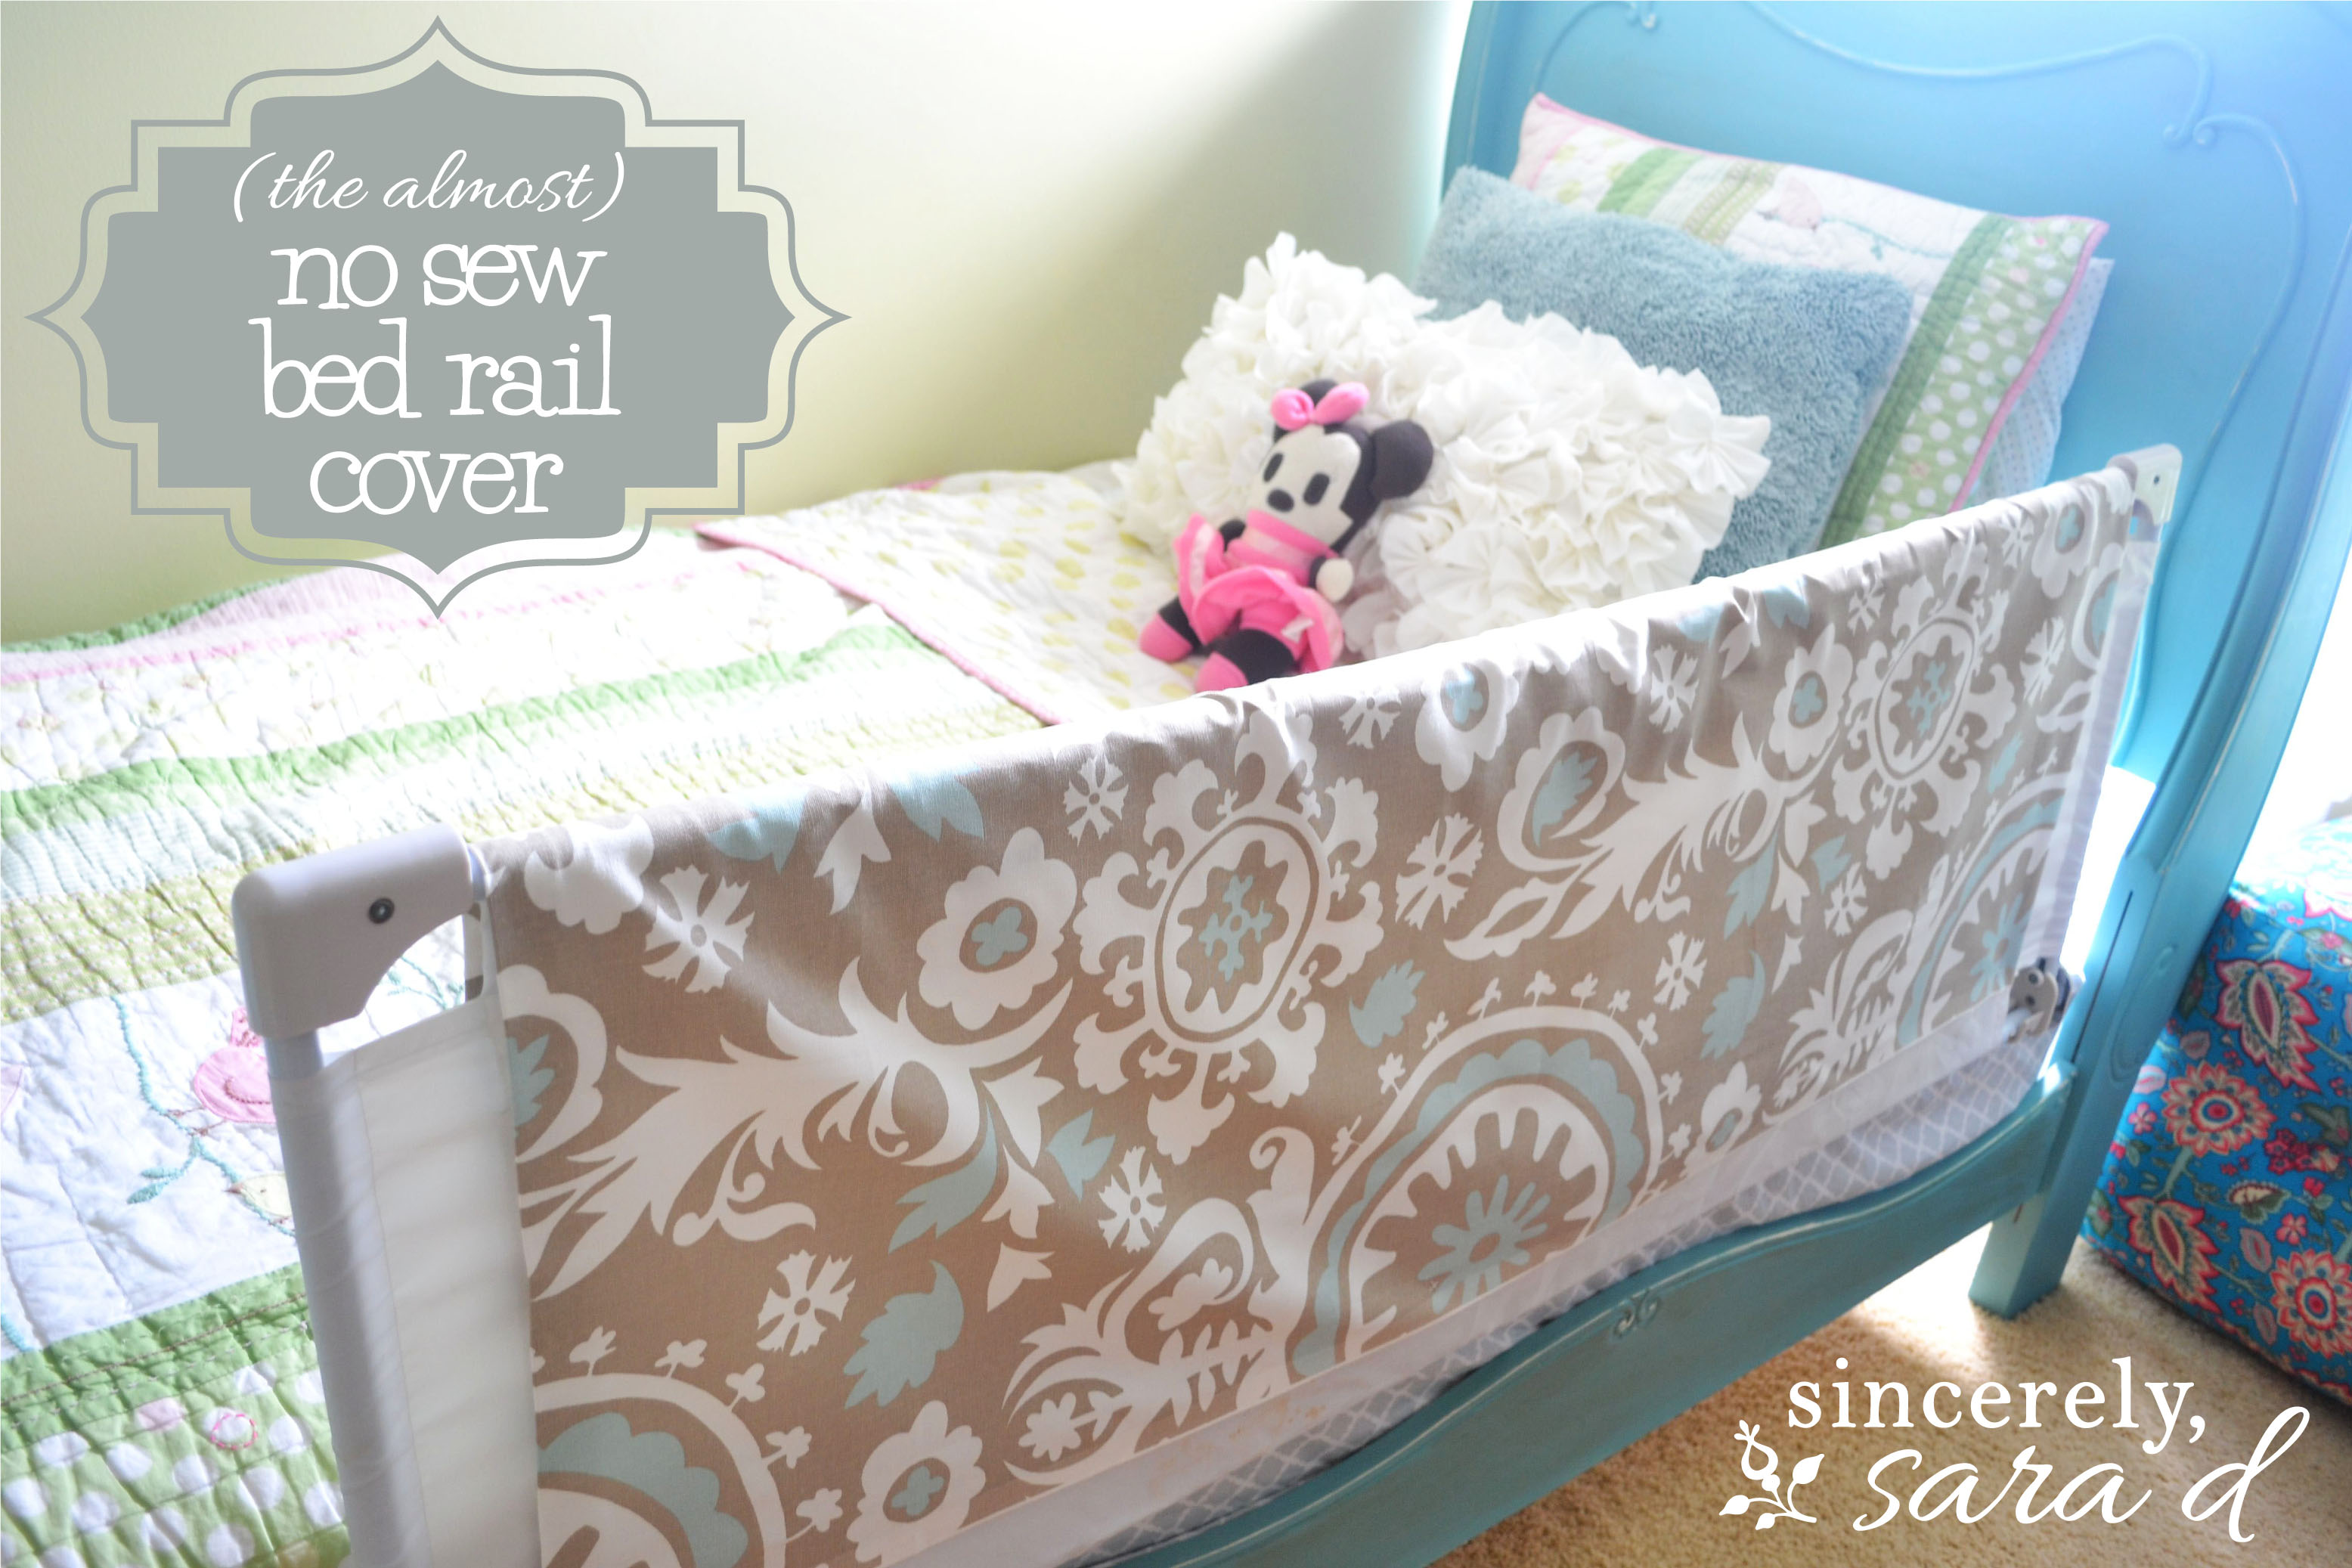 (the almost) no sew bed rail cover - Sincerely, Sara D.